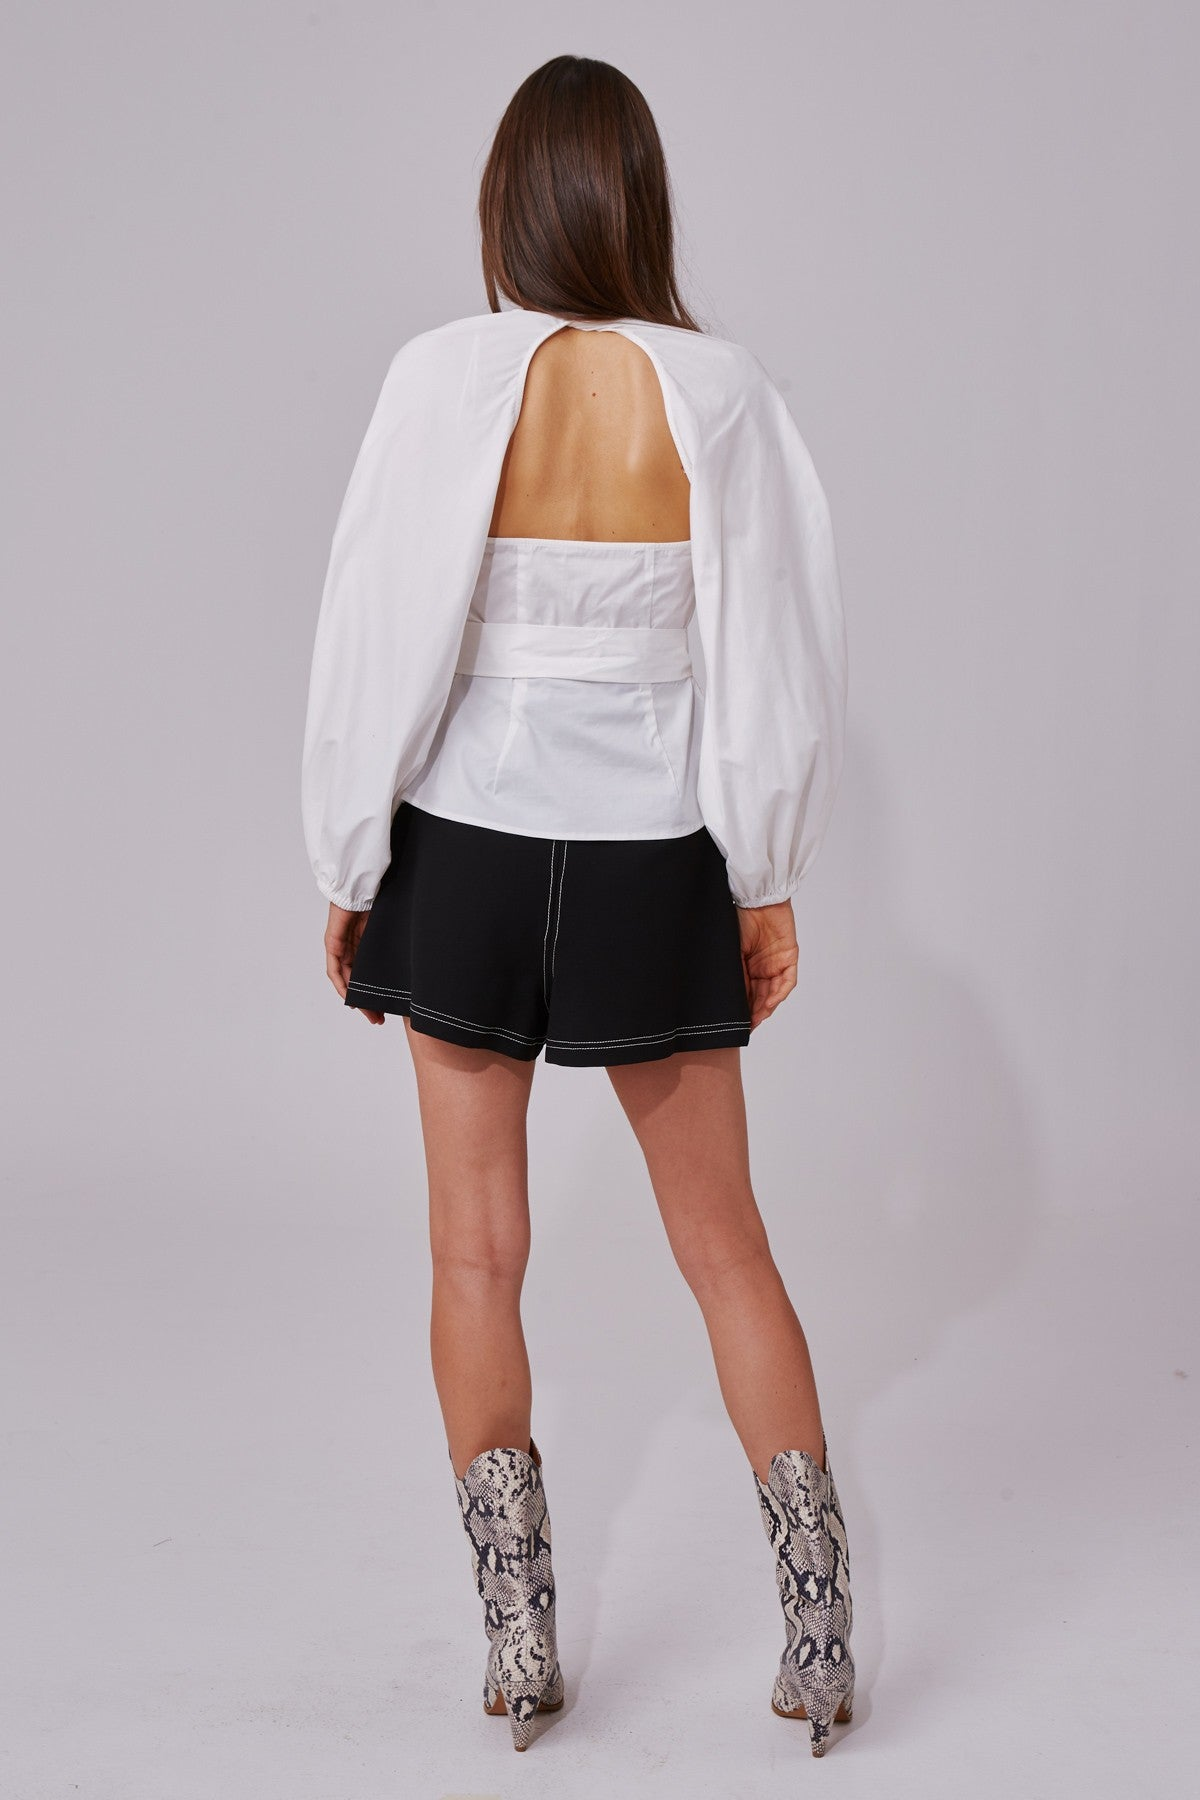 AVIDITY TOP white